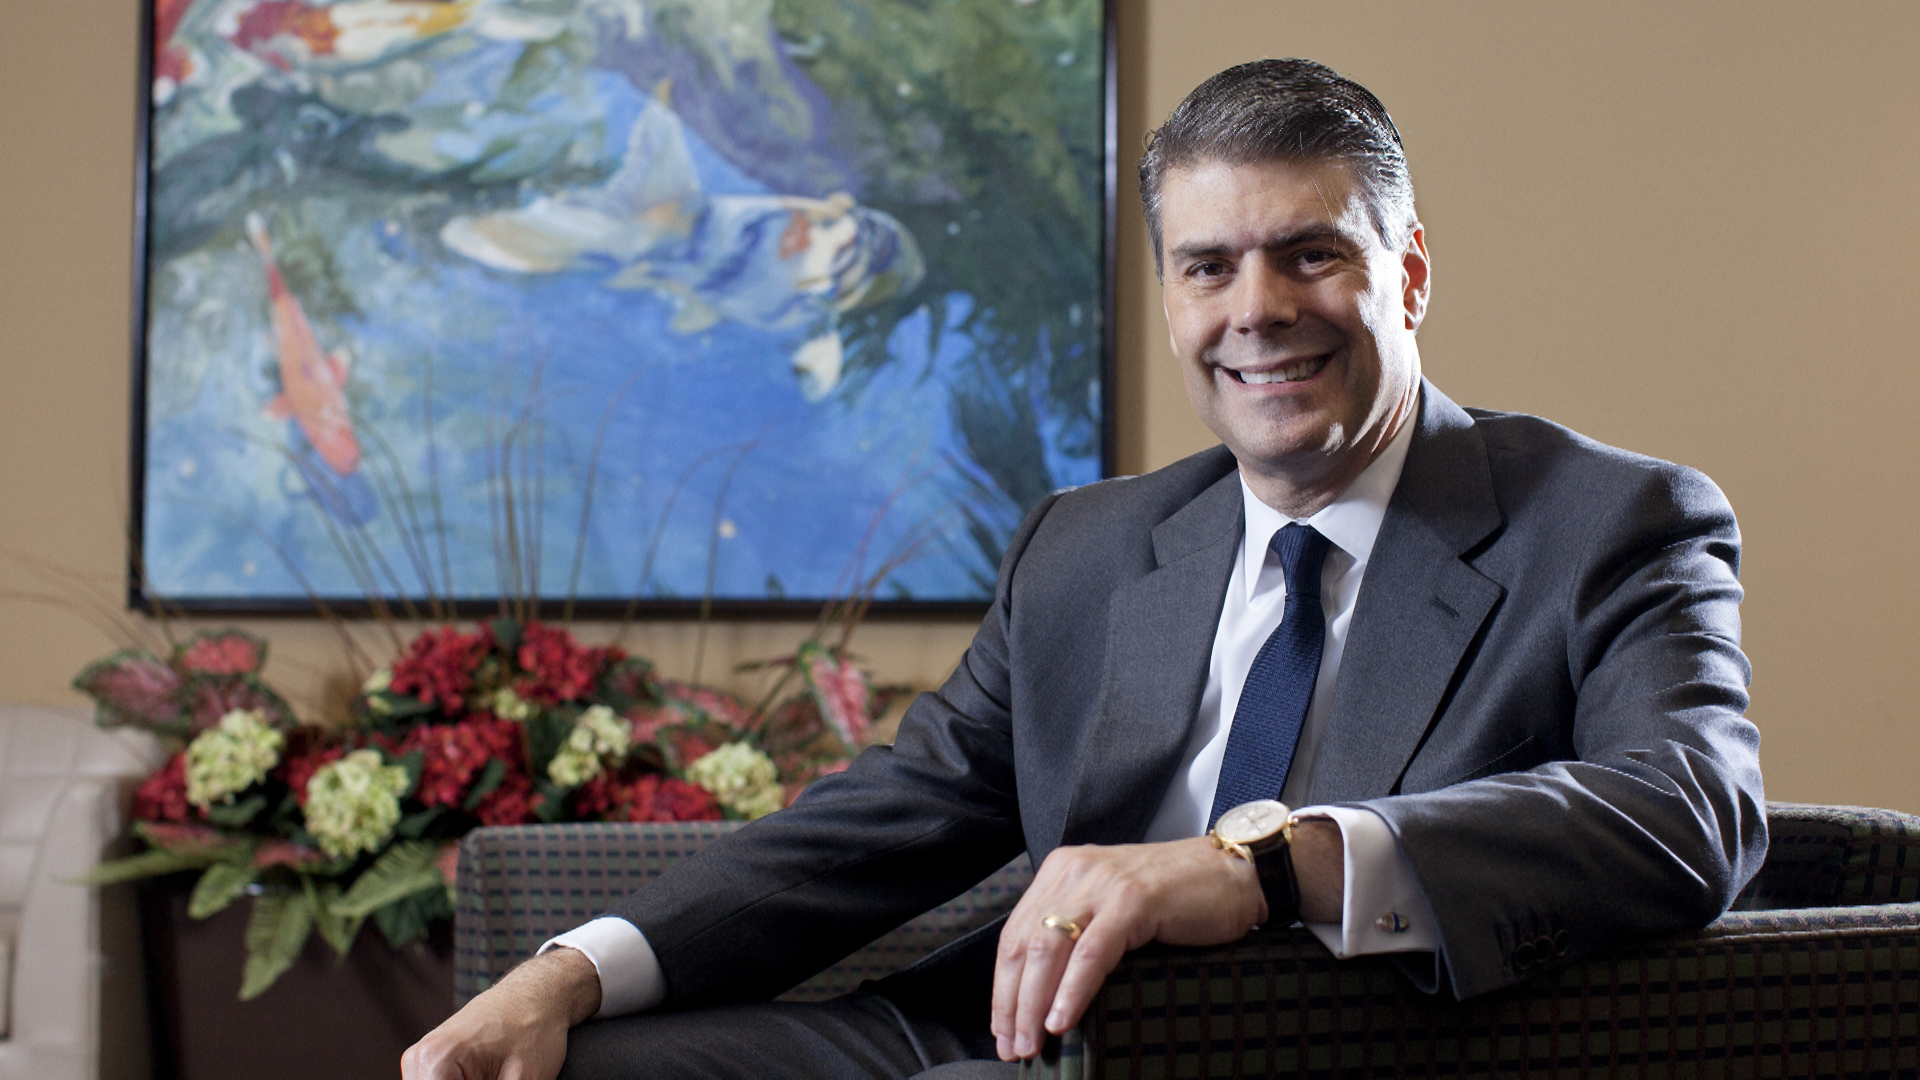 Jose Almeida, CEO of Baxter International